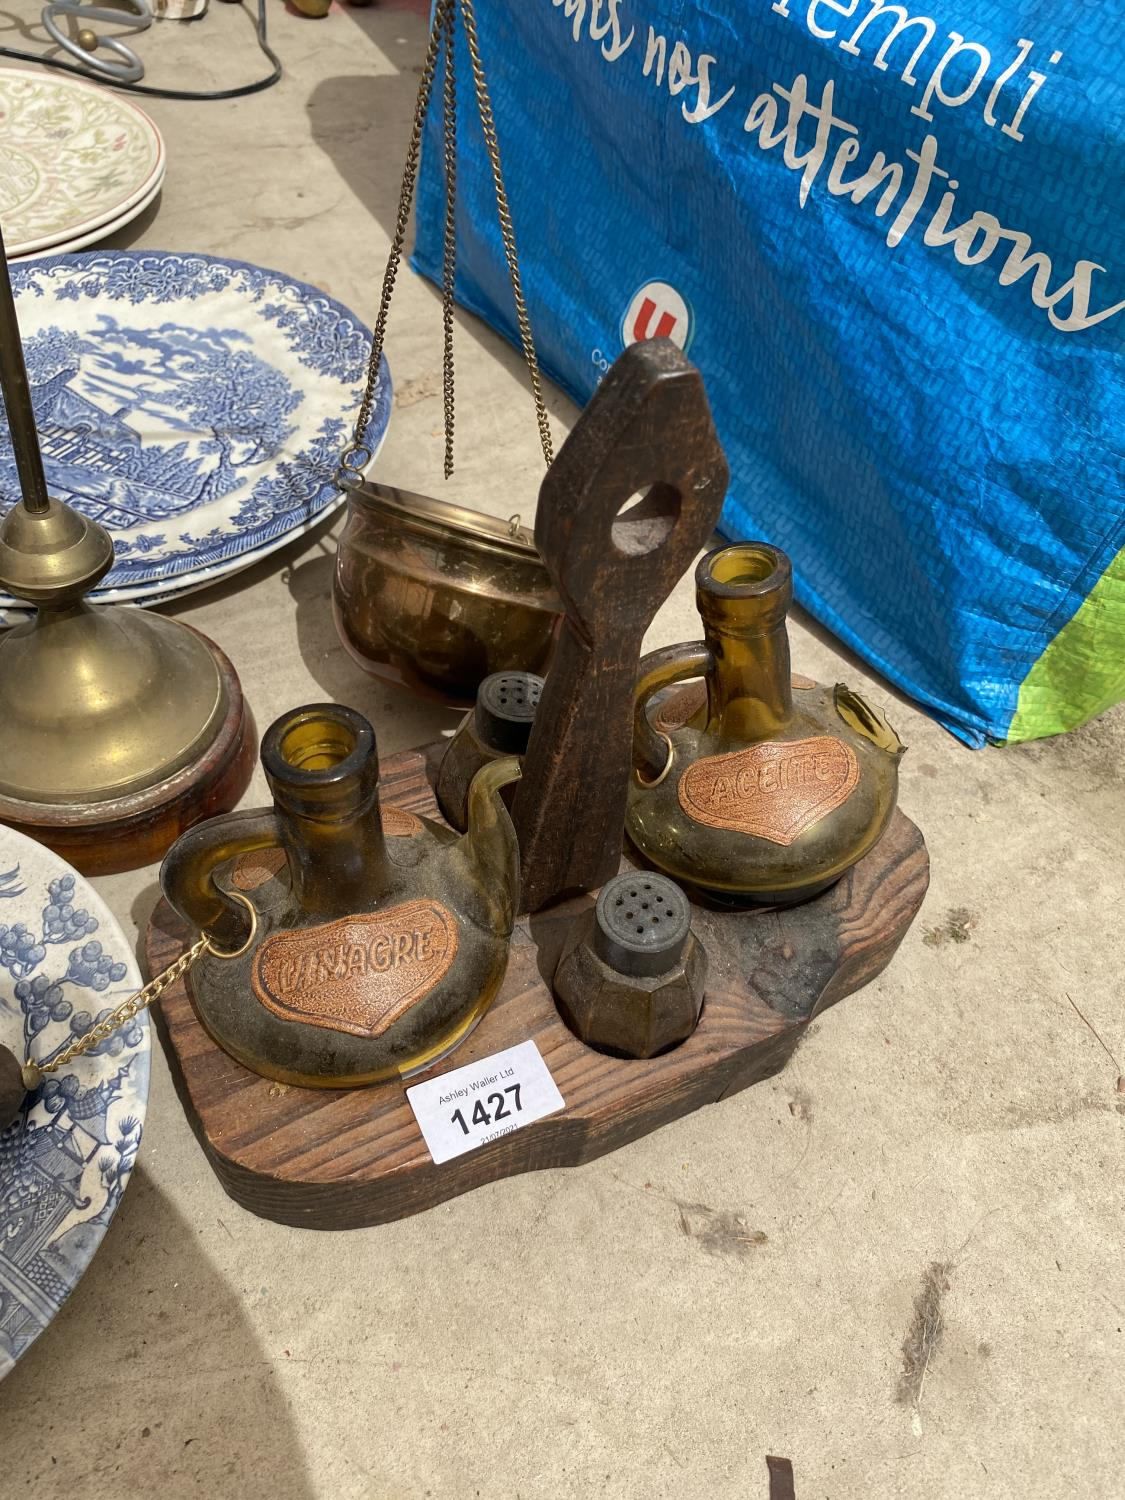 AN ASSORTMENT OF ITEMS TO INCLUDE BLUE AND WHITE CERAMICS PLATES, A GLASS LAMP AND BALANCE SCALES - Image 2 of 4